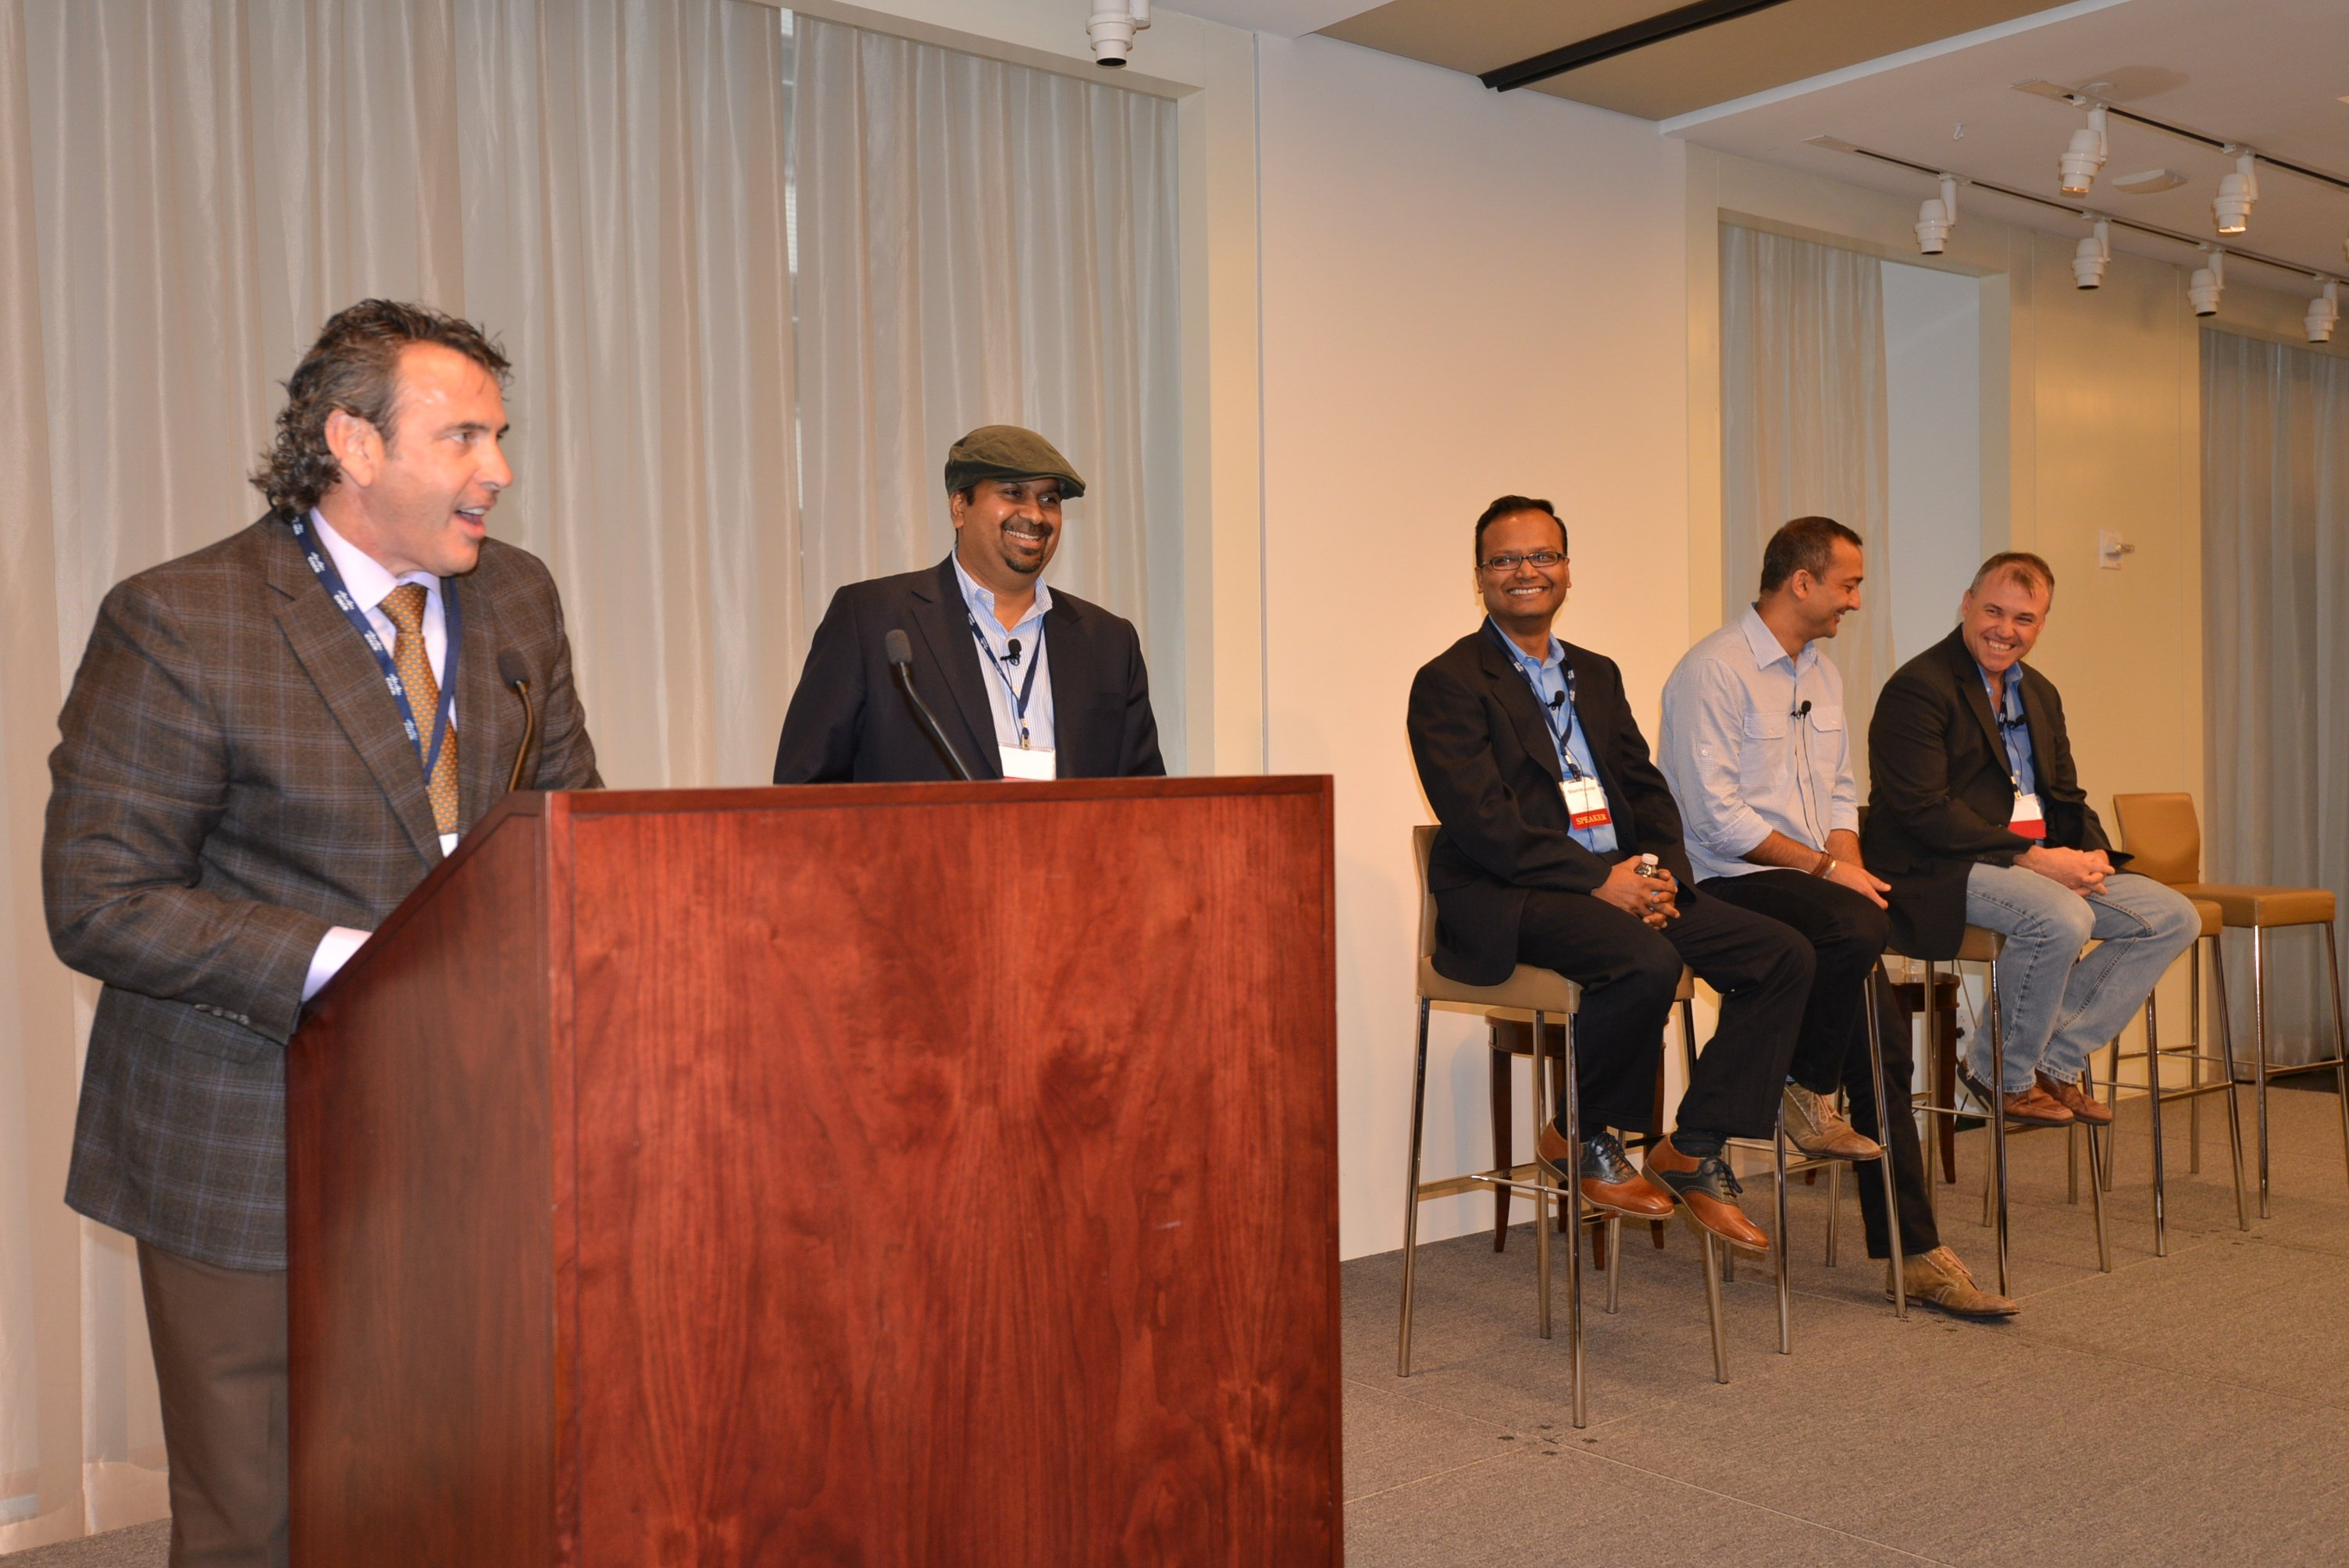 Nick Lippis introducing Natarajan Subrahmanyan, Shamim Akhtar, Najam Ahmad, and Kevin Clarke on the SDN Opportunities and Challenges in Content Providers, Public Cloud Operators, and Telcos panel